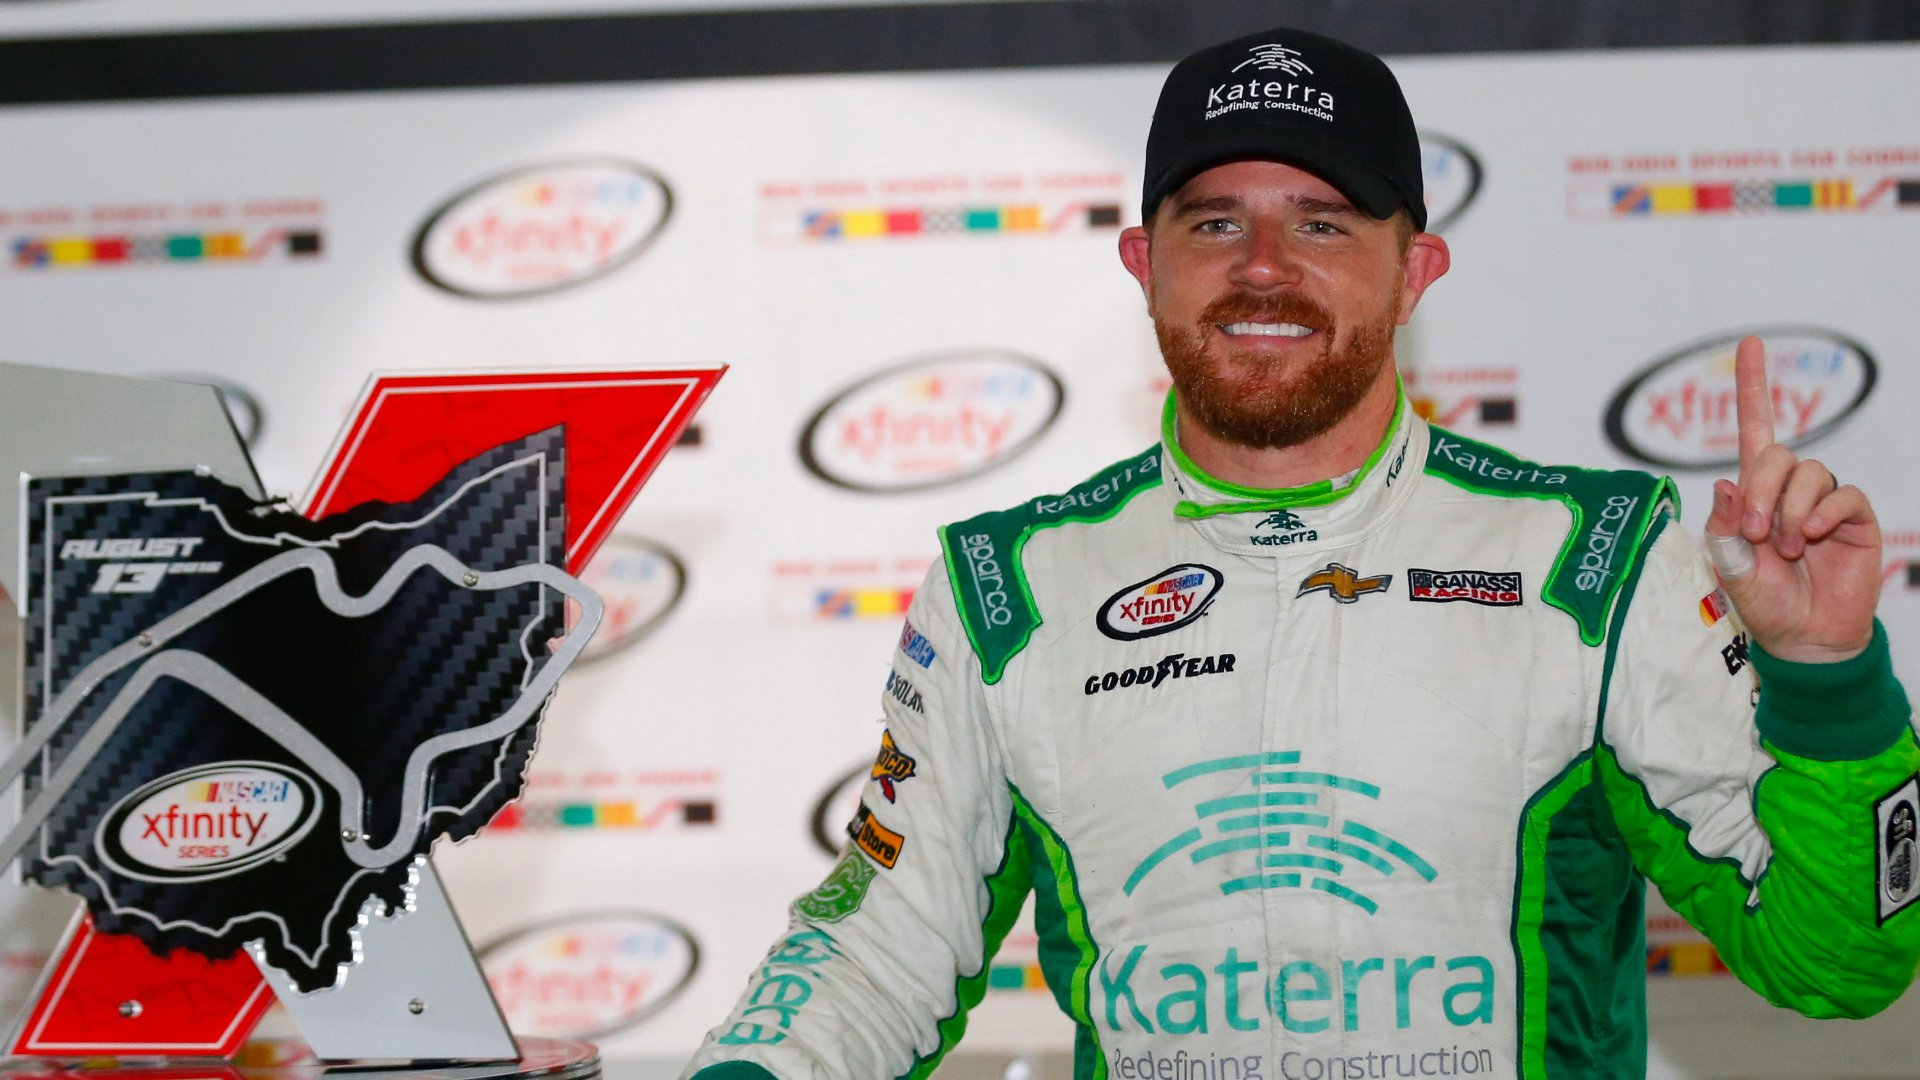 If You Think You Have Nothing in Common With Nascar Drivers, You Don't Know Justin Marks